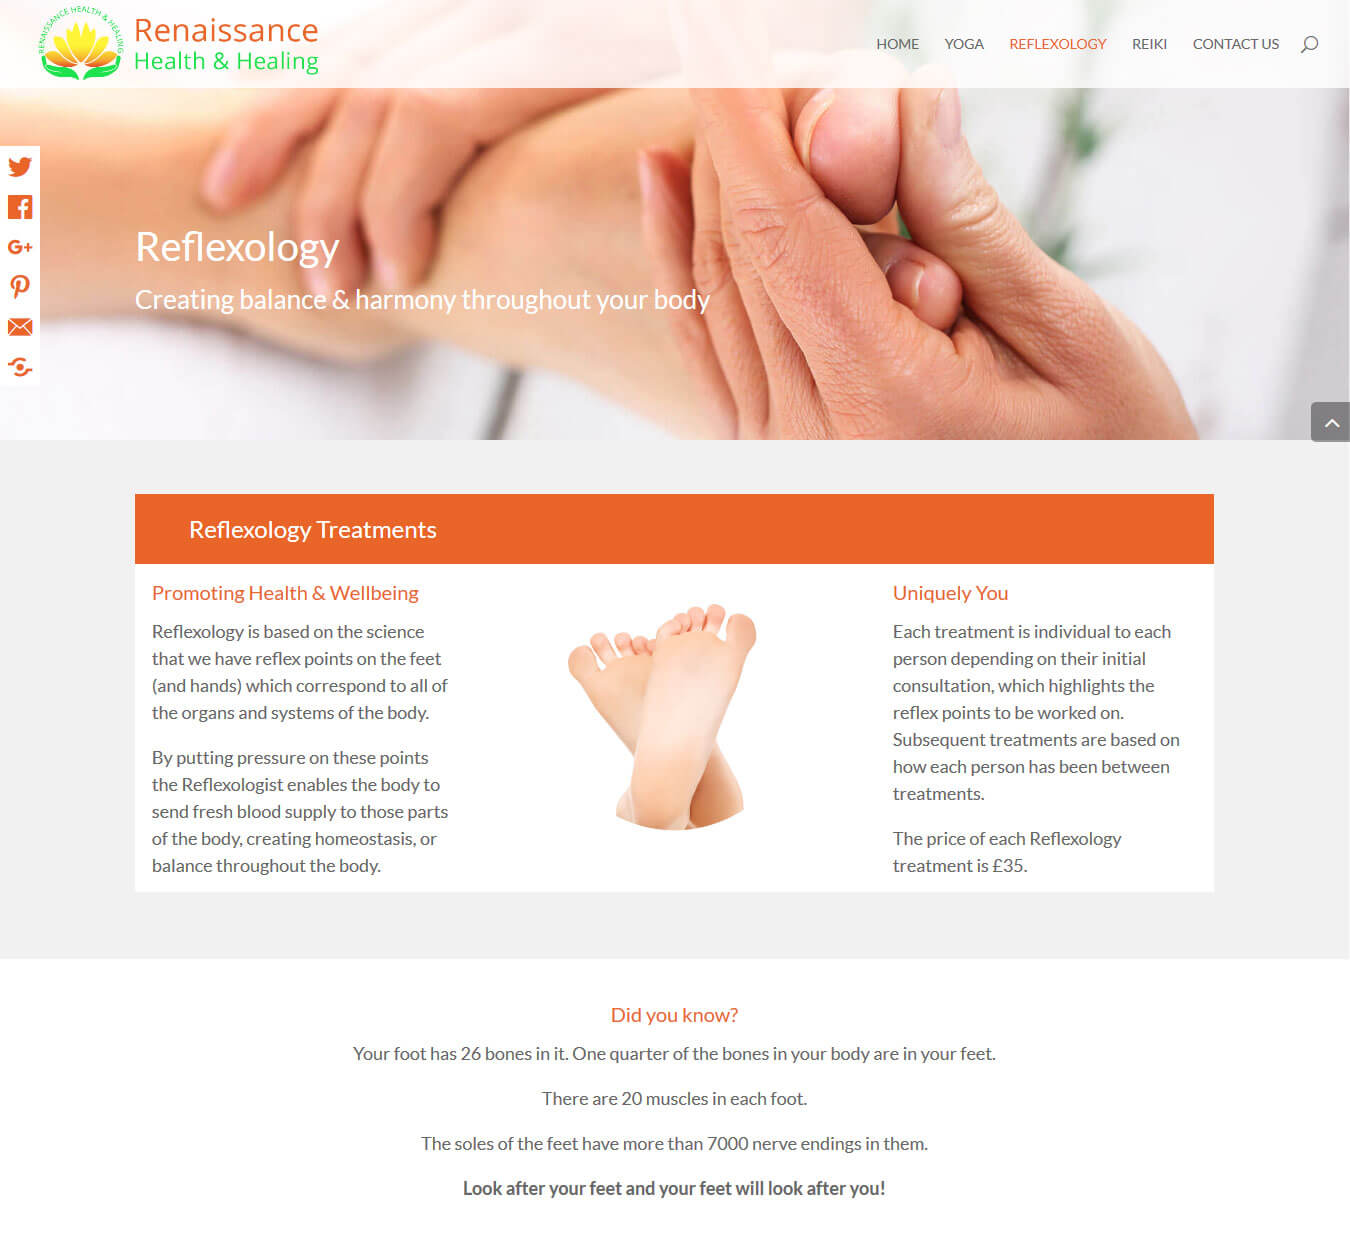 Reflexology page floating social media share buttons, image banner and introductory text